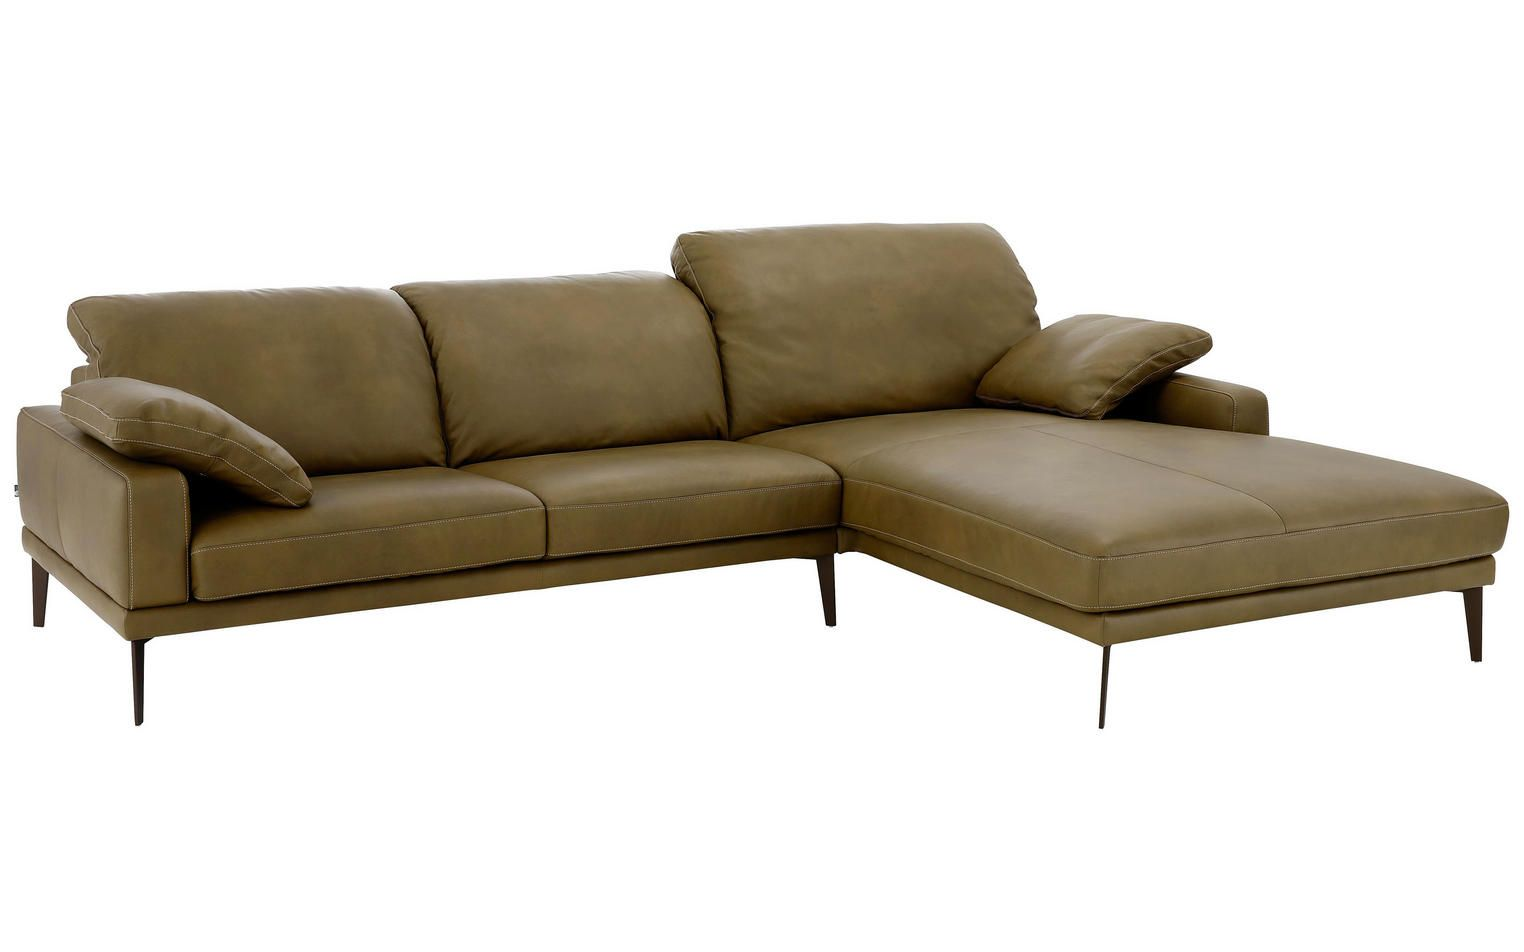 Wohnlandschaft Echtleder Sectional Couch Couch Living Room